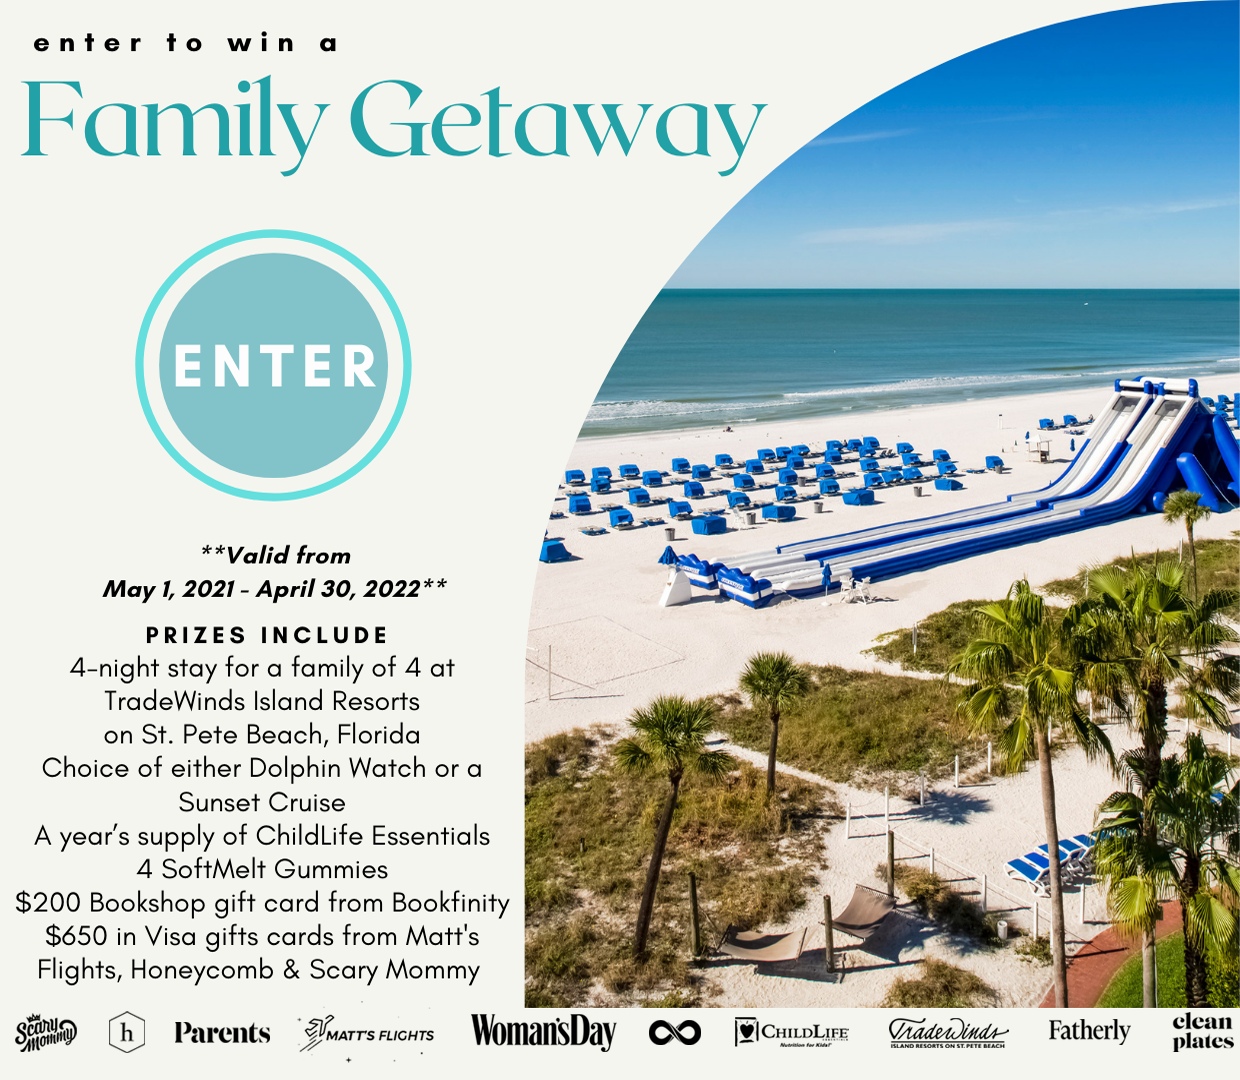 Enter for a chance to win: 4-night stay for a family of 4 at Tradewinds Islands Resorts on St. Pete Beach, Florida, Choice of either Dolphin Watch or Sunset Cruise, A year's supply of ChildLife Essentials 4 SoftMelt Gummies, $200 Bookshop gift card from Bookfinity, $650 in Visa gifts cards from Matt's Flights, Honeycomb & Scary Mommy